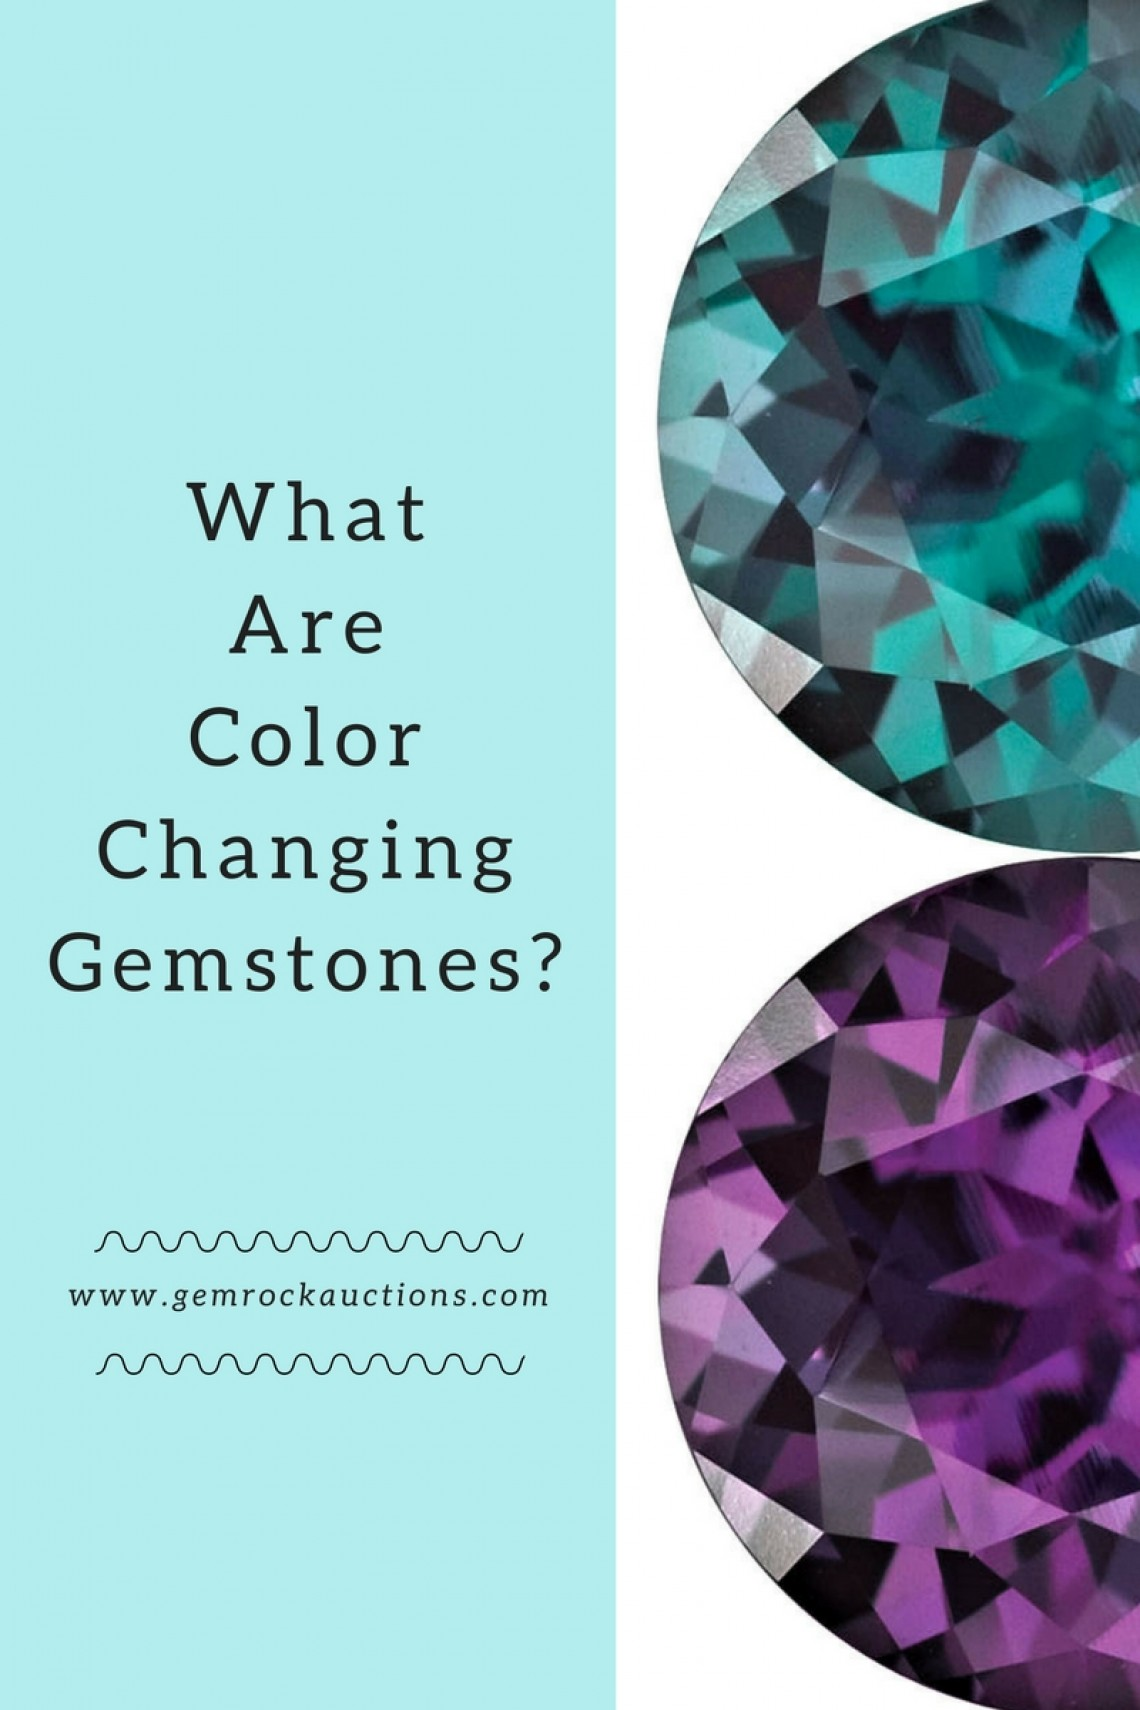 color gemstone learn colour gem rock auctions technical change gemstones changing what on purple information